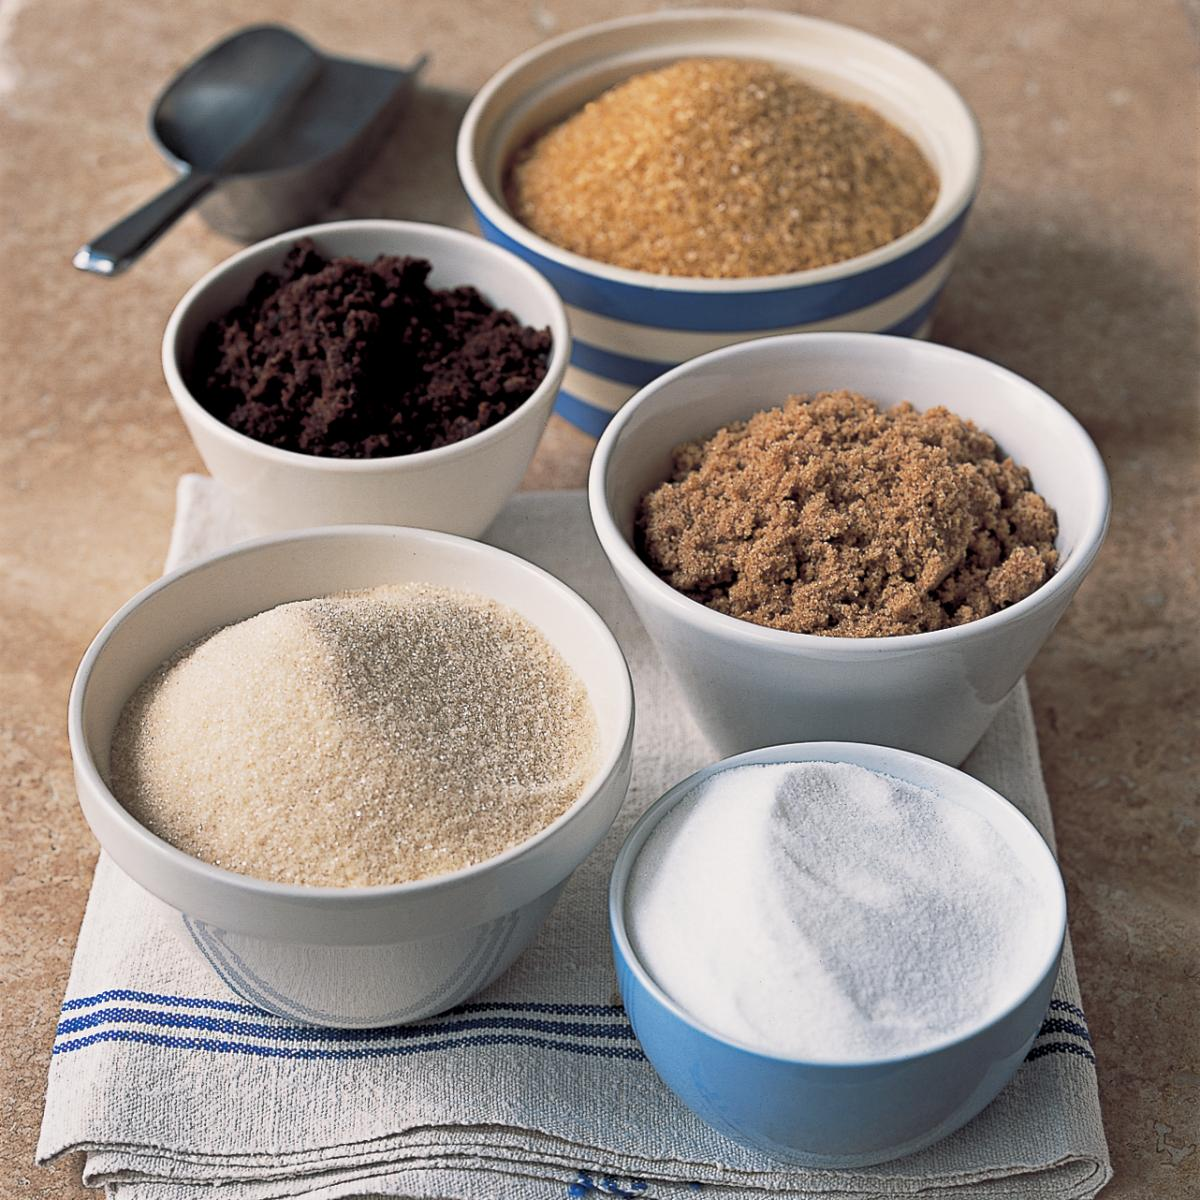 Ingredient puddings sugars and syrups